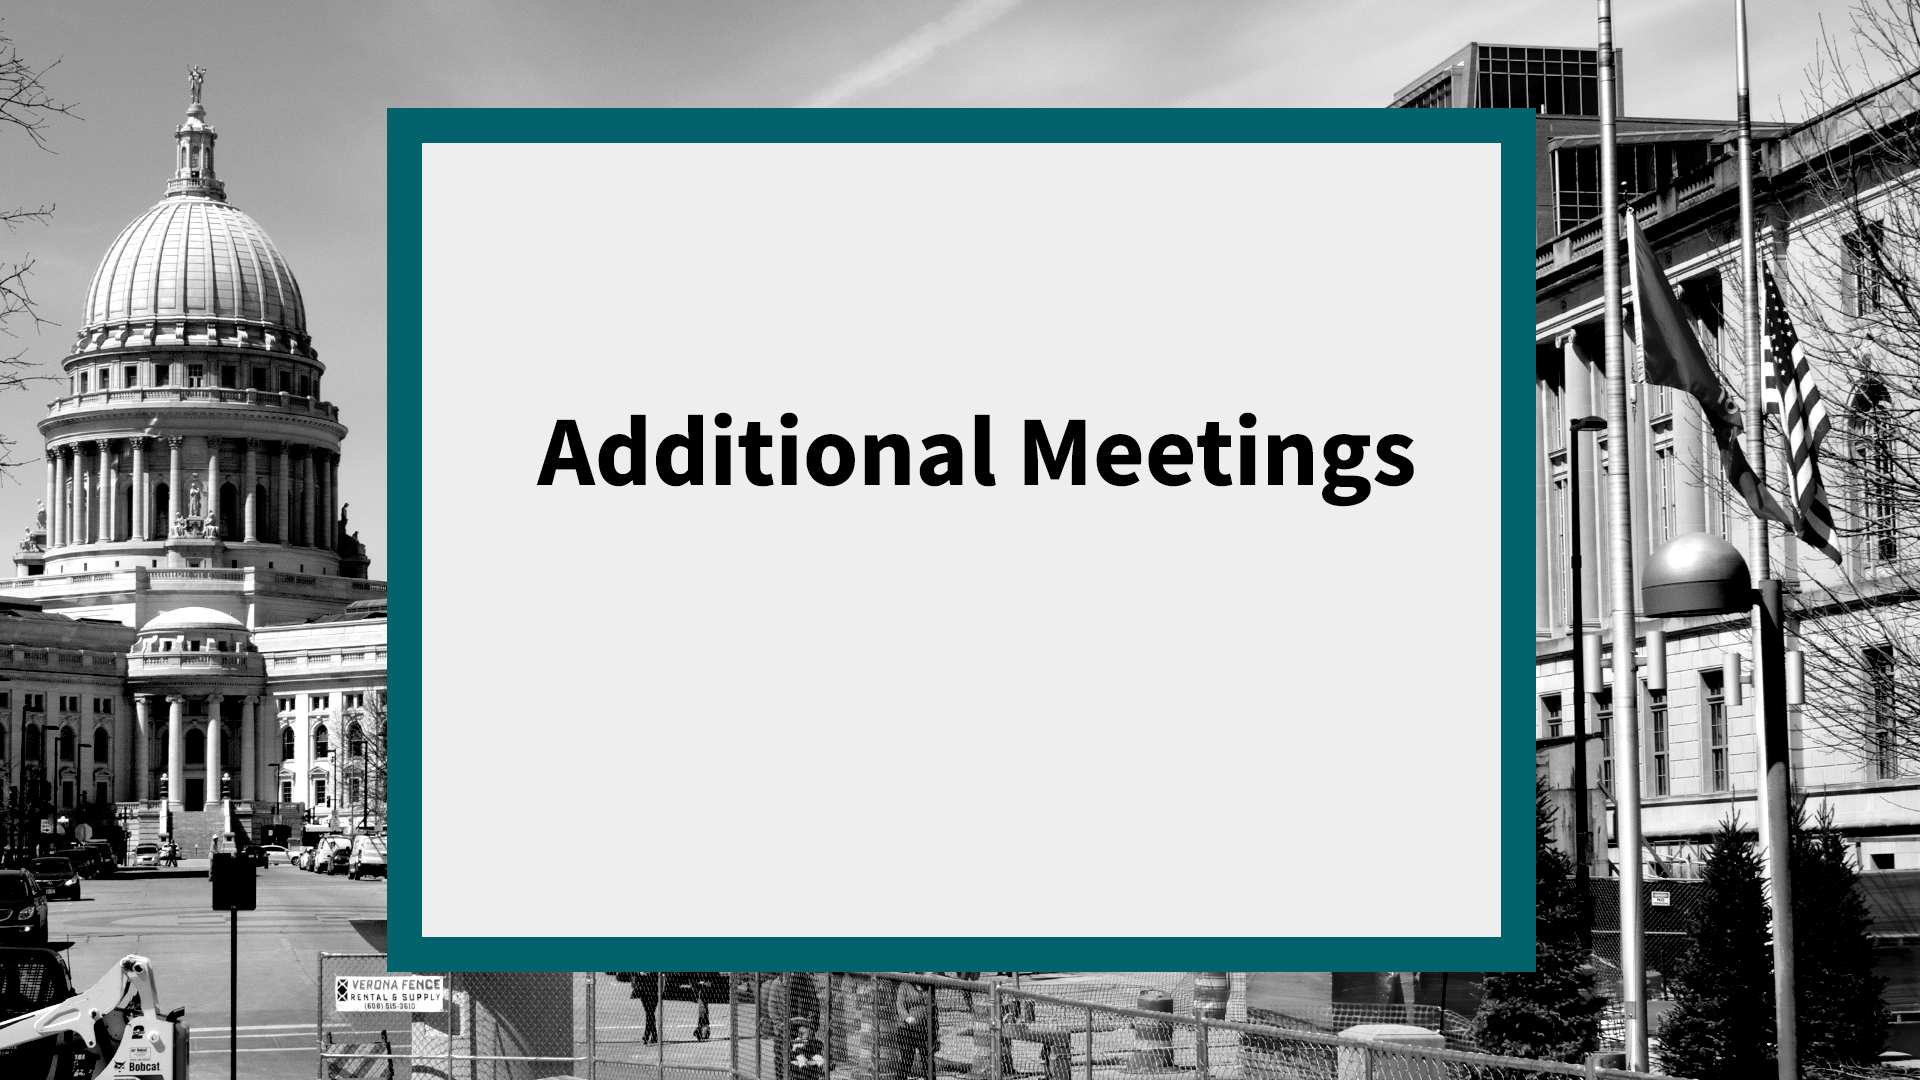 Additional Meetings